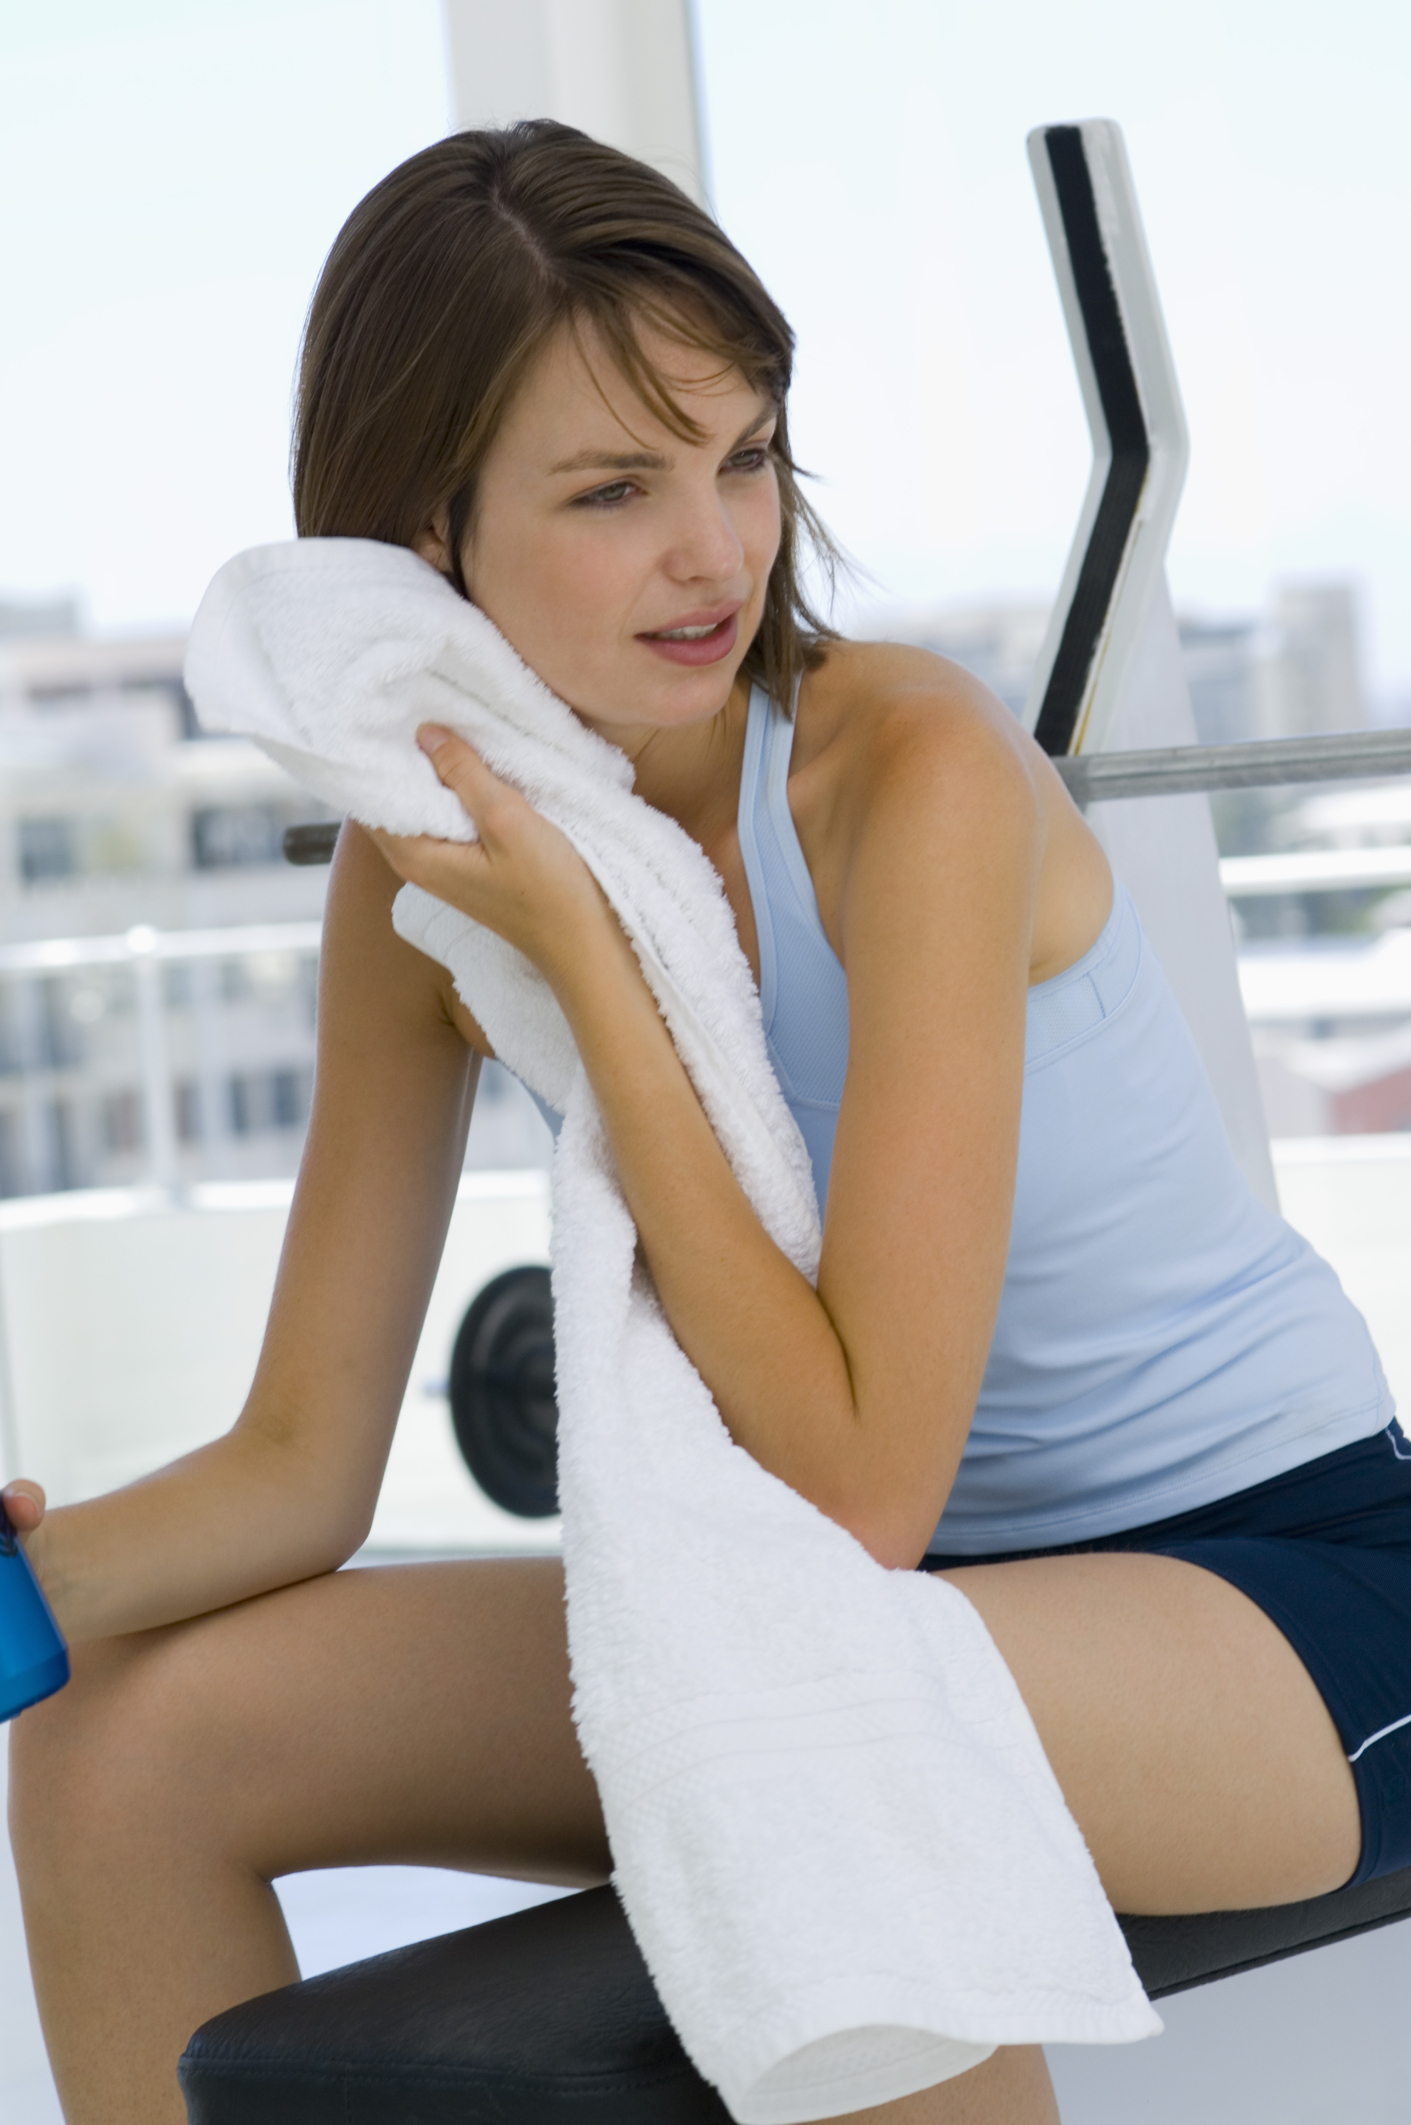 How to Get Rid of Body Odor for Women